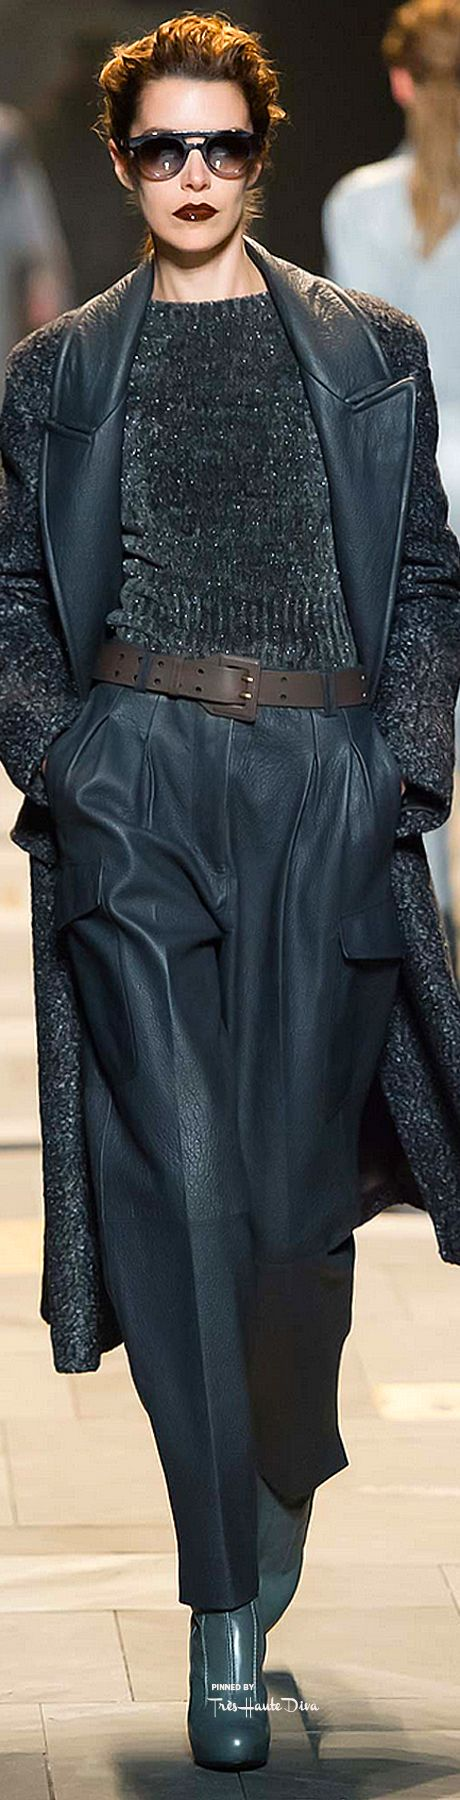 #MFW Trussardi Fall 2015 RTW ♔THD♔ More of this collection on my Milan Fall 2015…